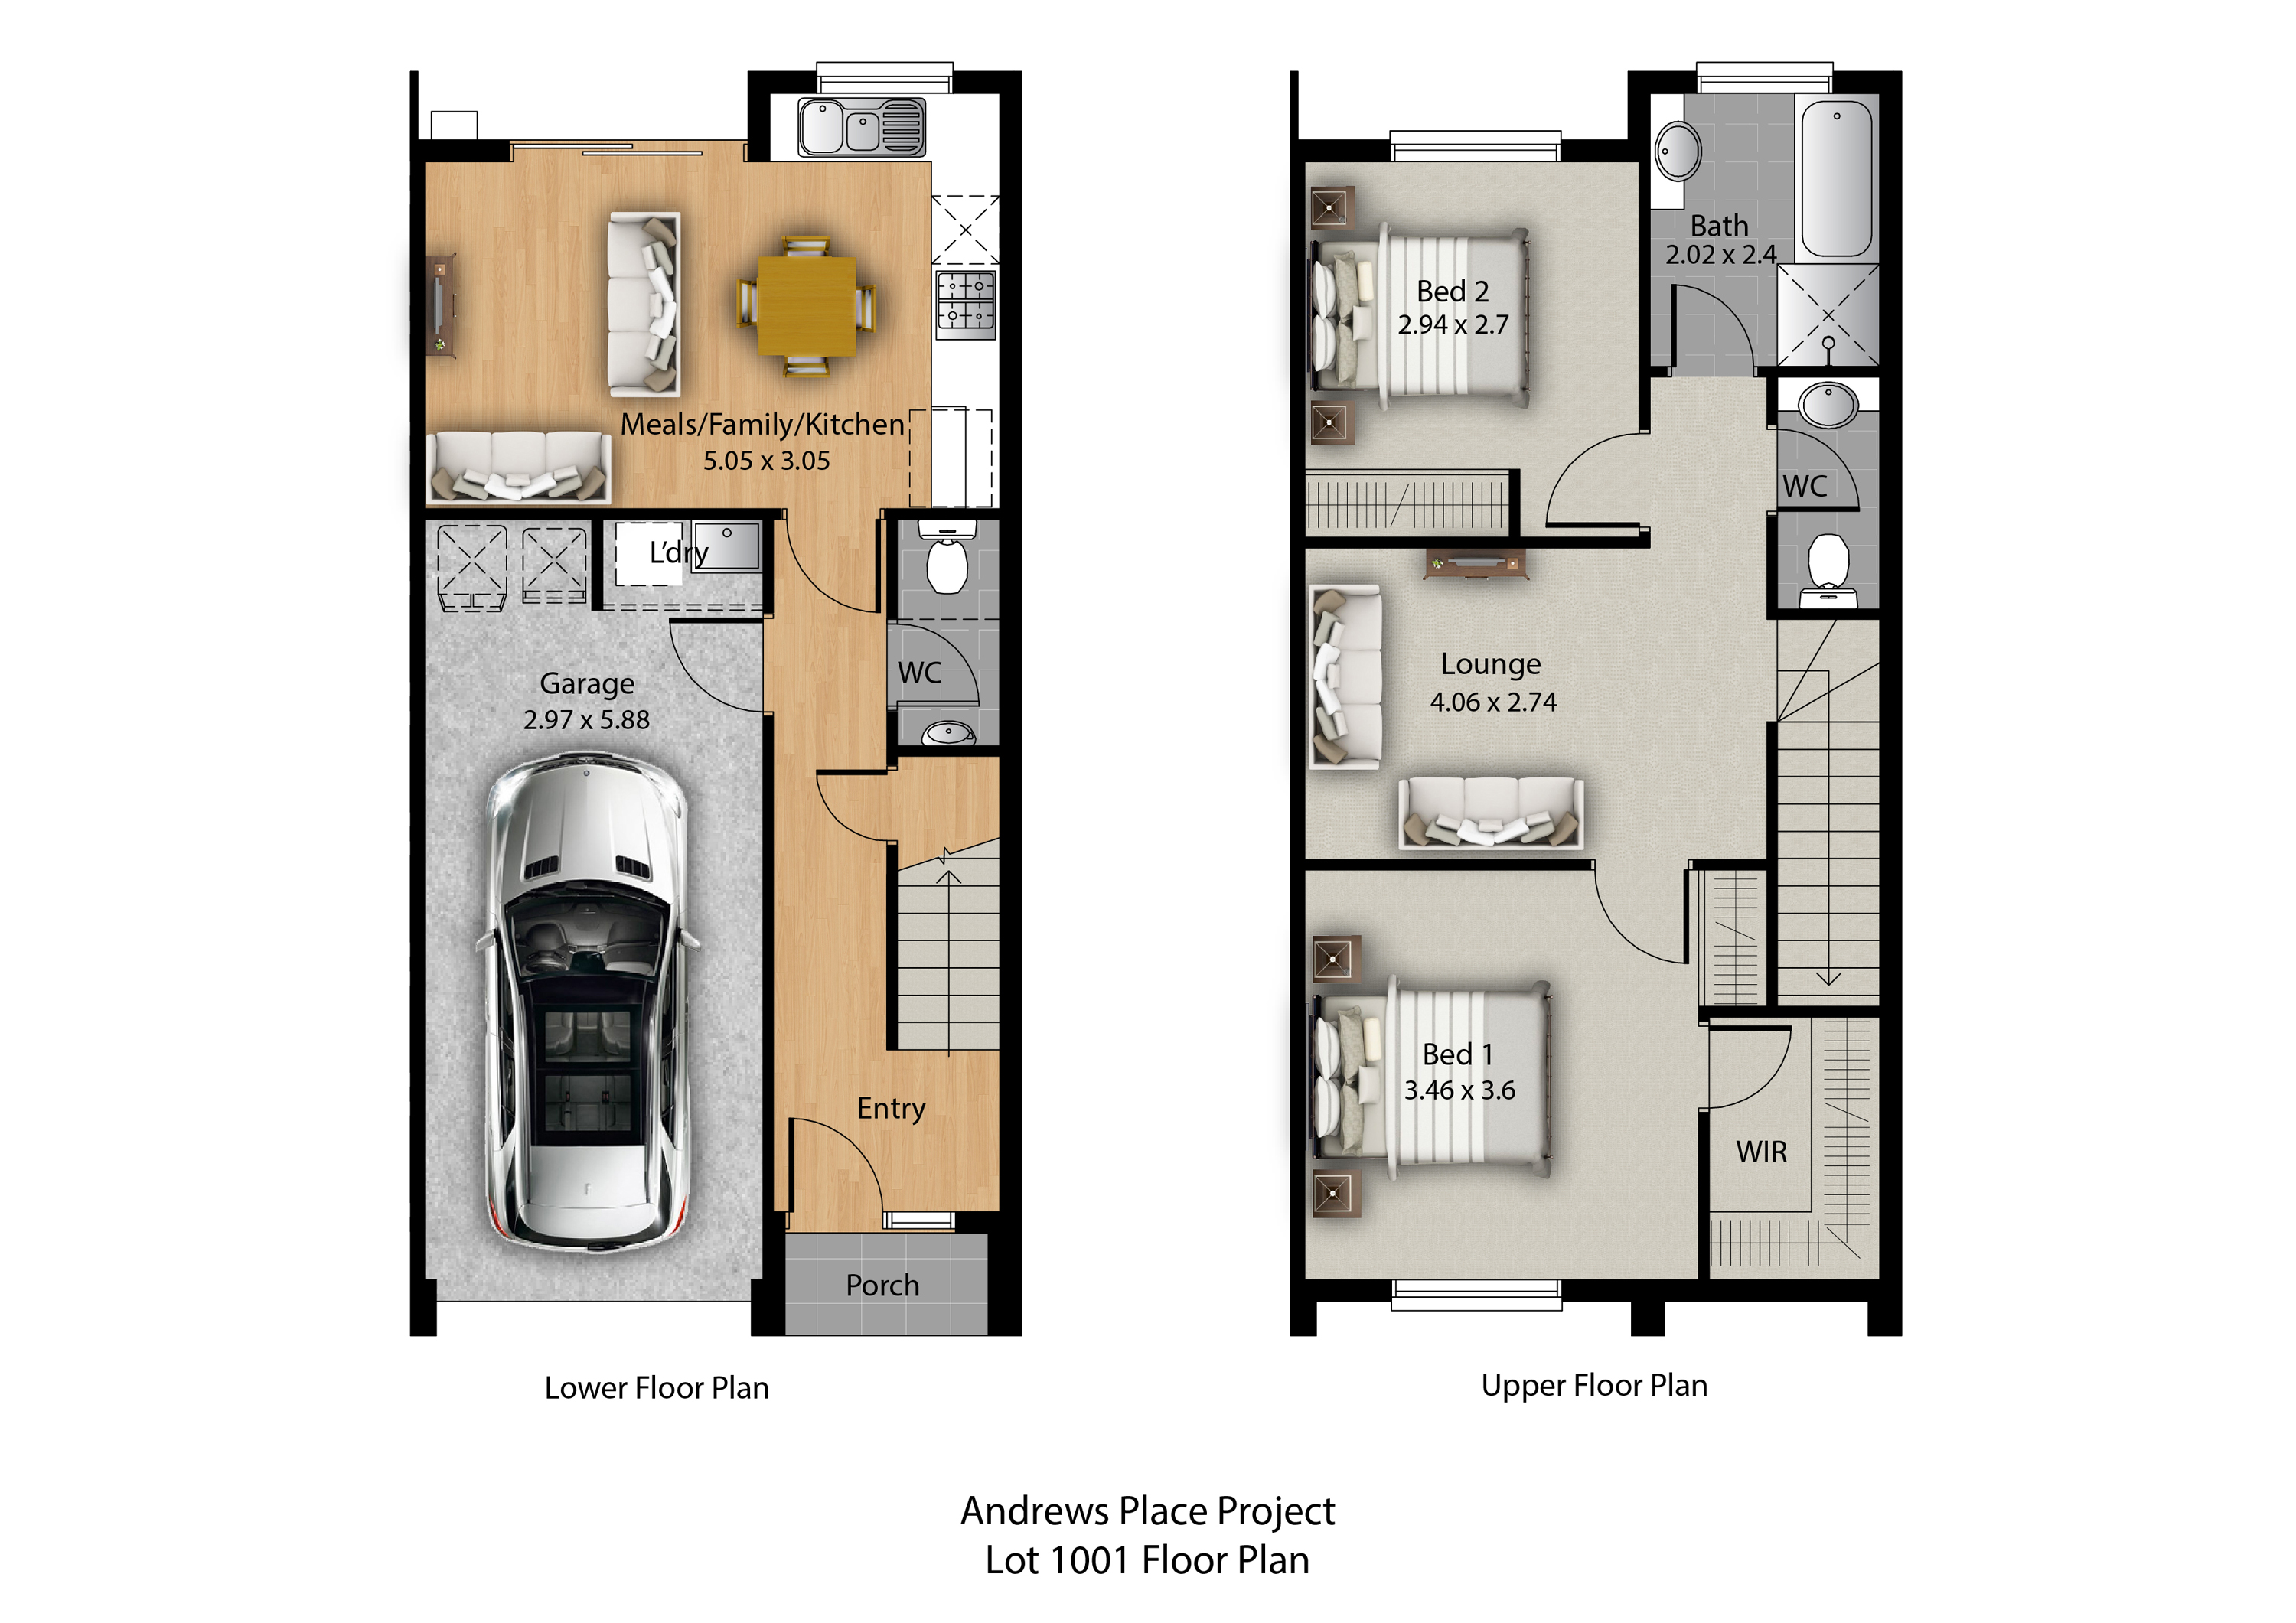 Andrews Place 5